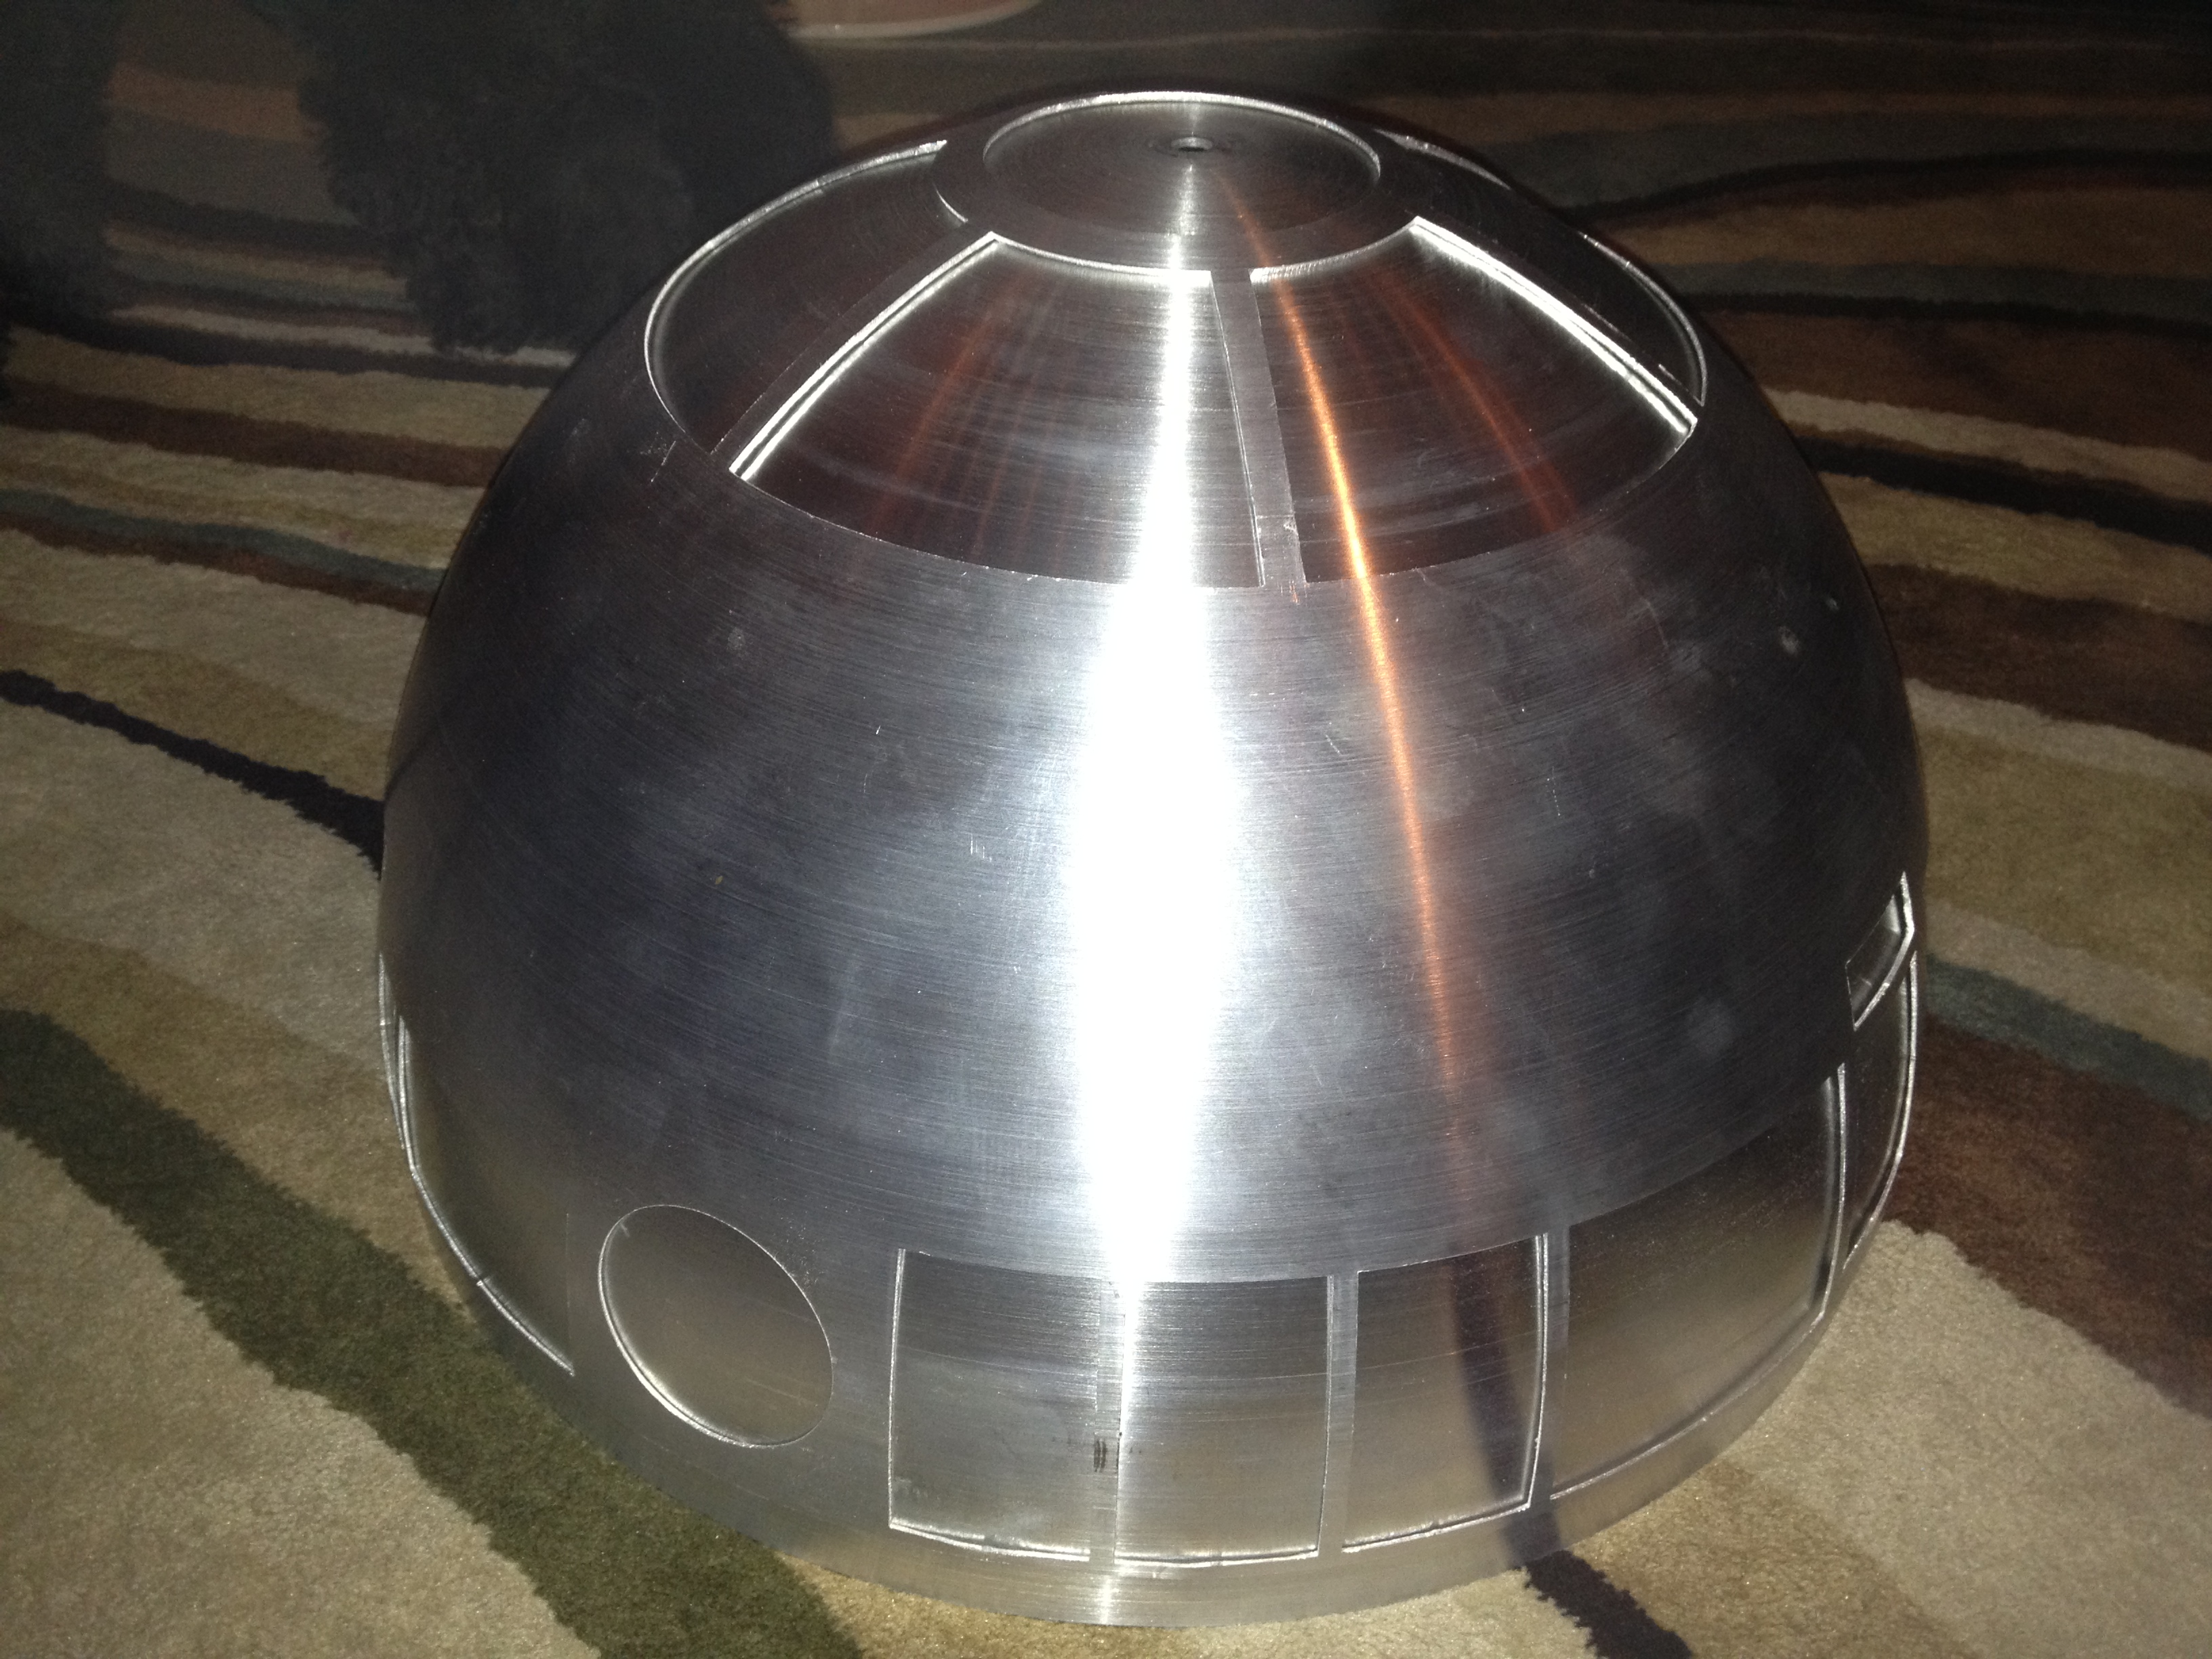 The safest place for the now cut outer dome to sit is resting on the solid inner dome.